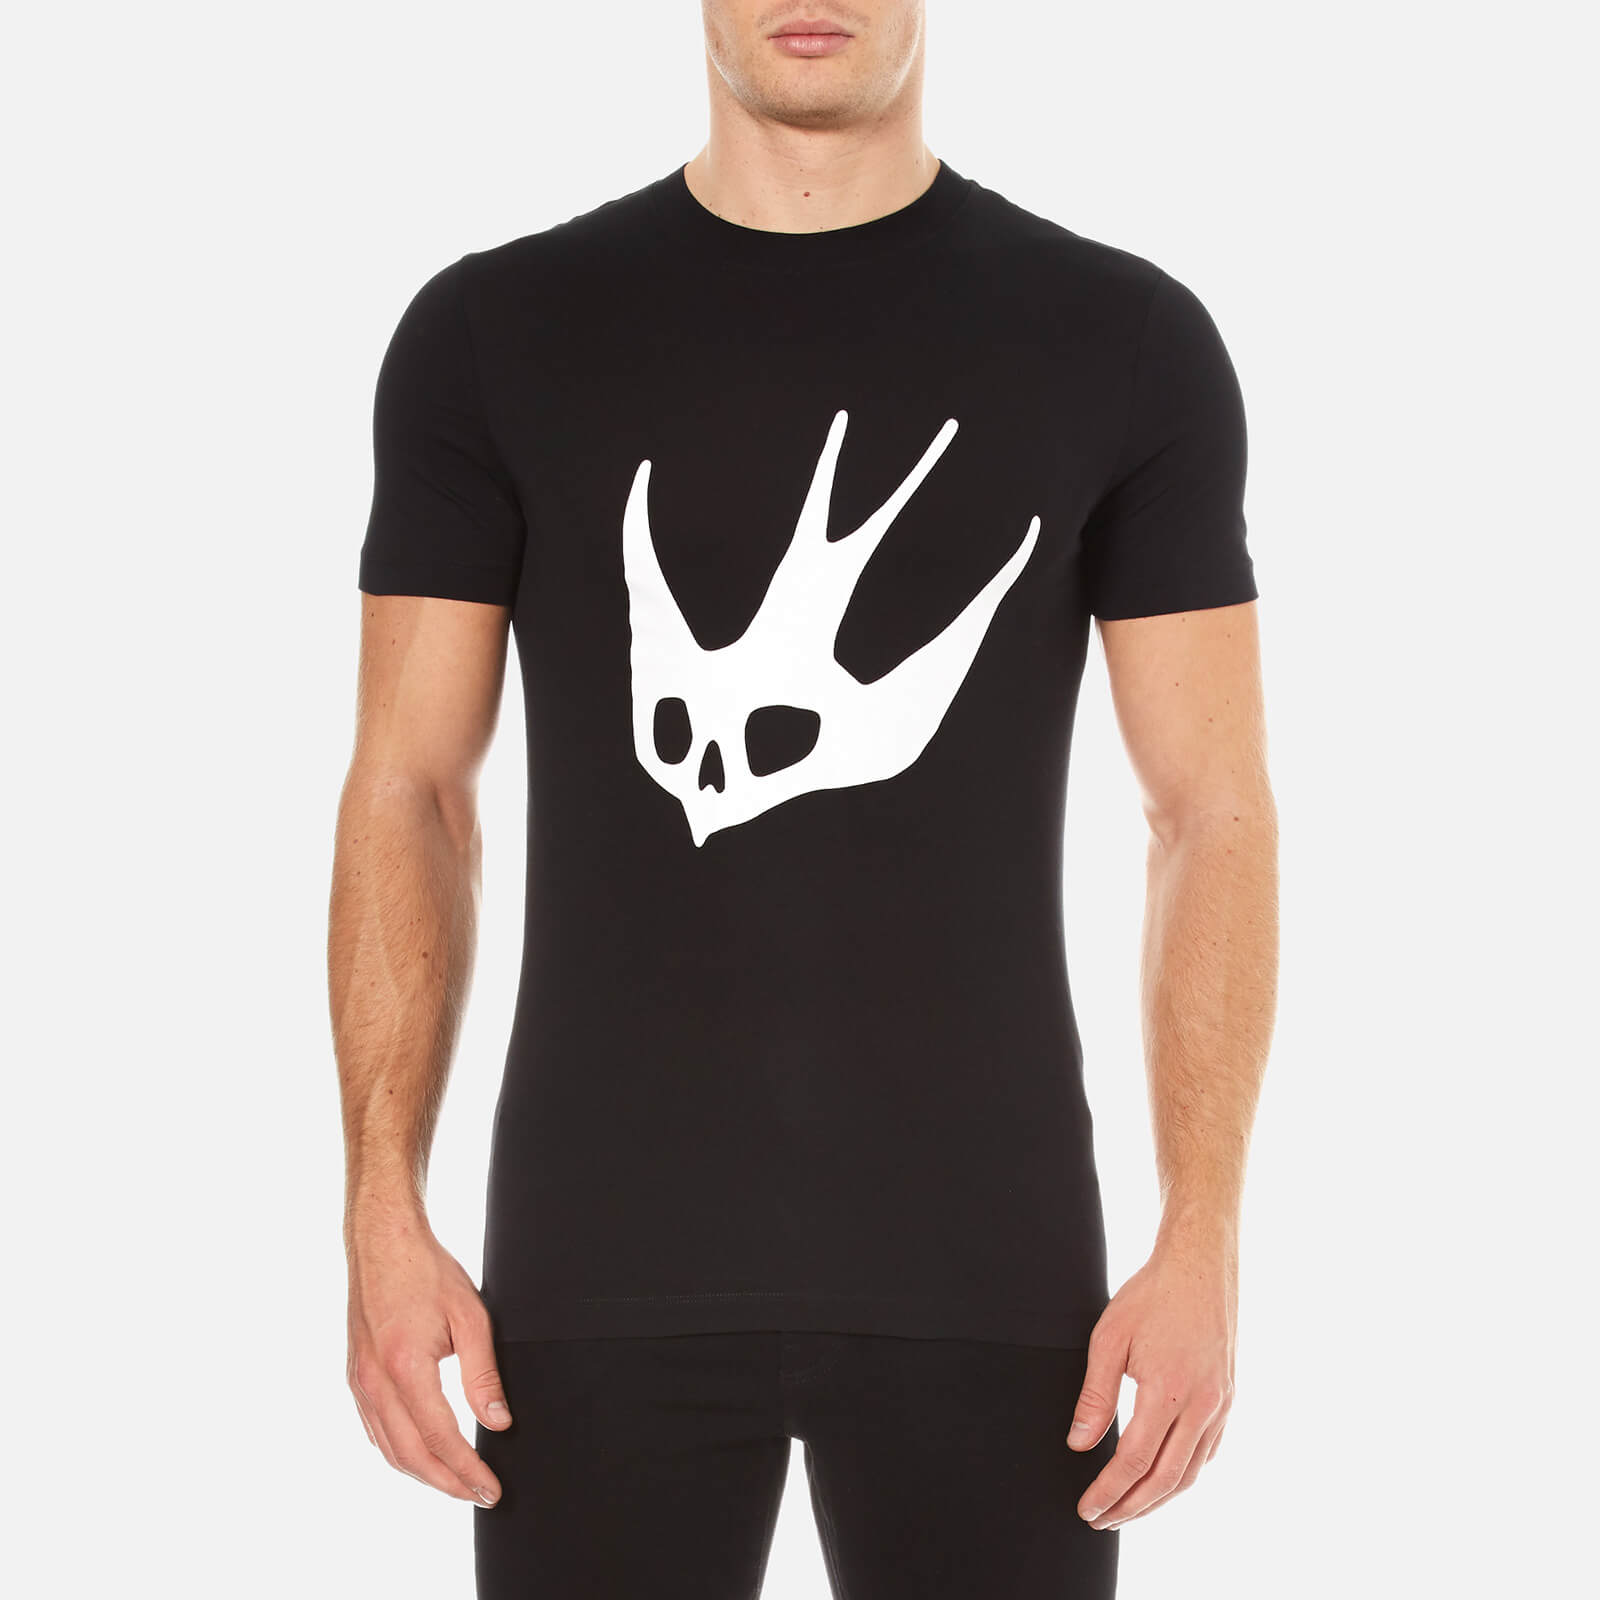 3071df5d McQ Alexander McQueen Men's Large Swallow Crew Neck T-Shirt - Black - Free  UK Delivery over £50